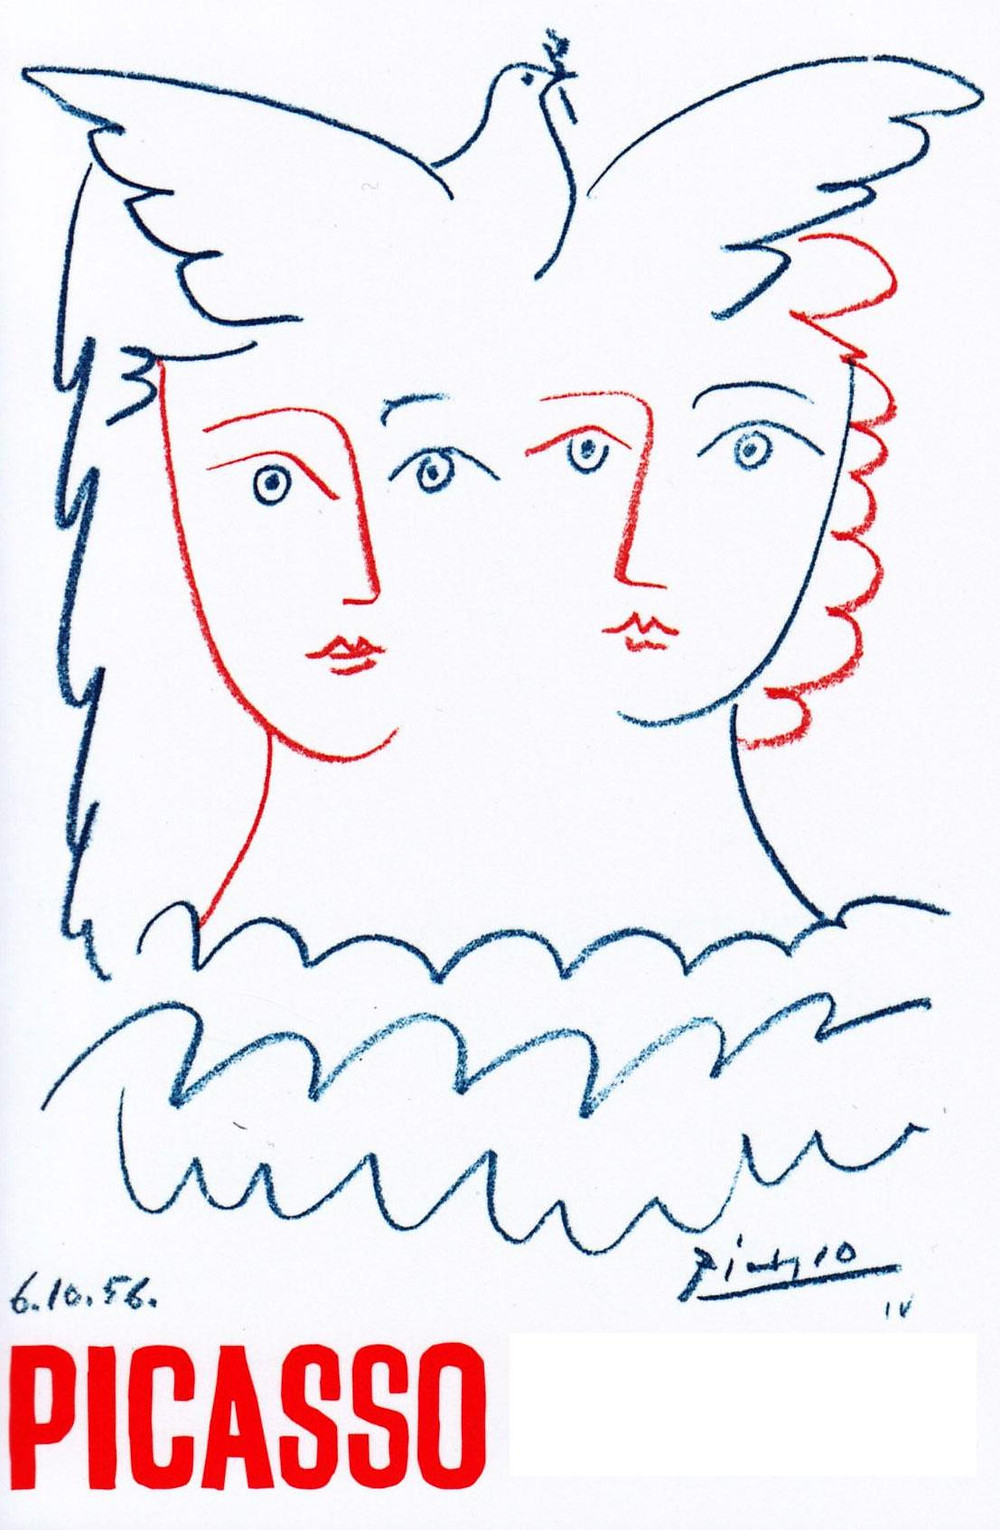 picasso-exhibition-cover.jpg